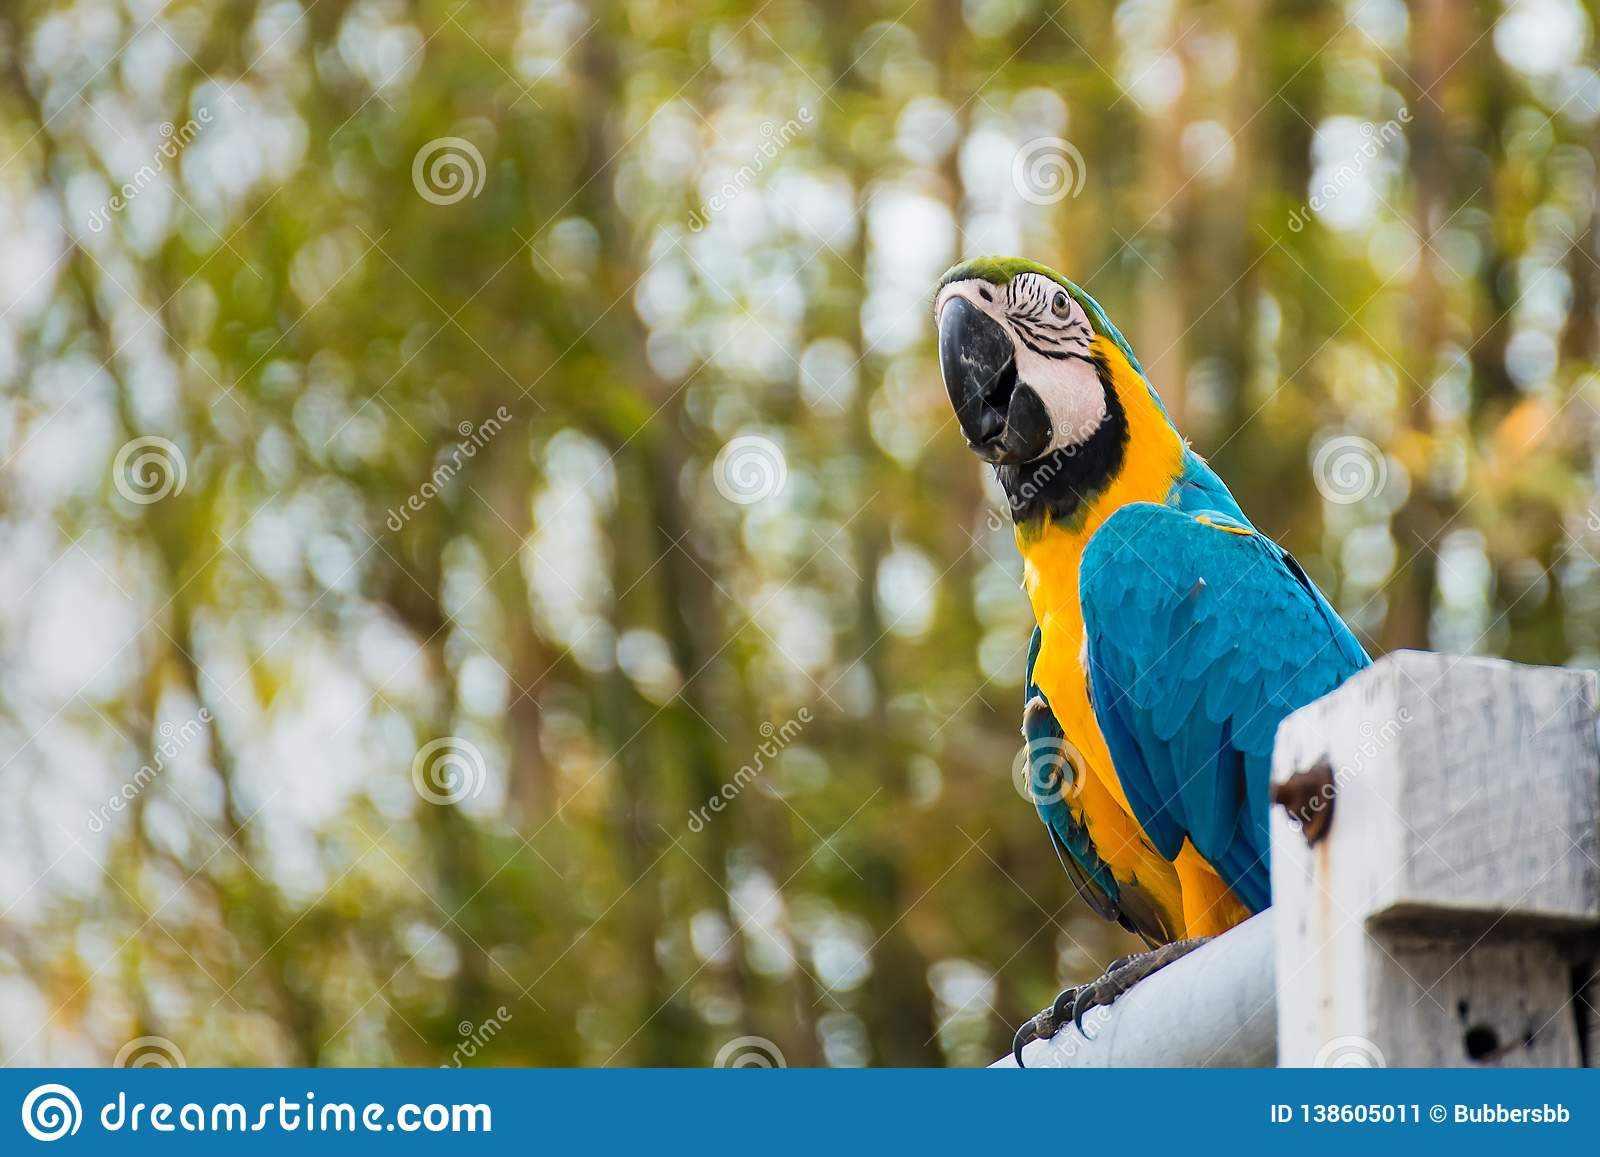 .Single Blue and Yellow Macaw in the Natural background.Thailand